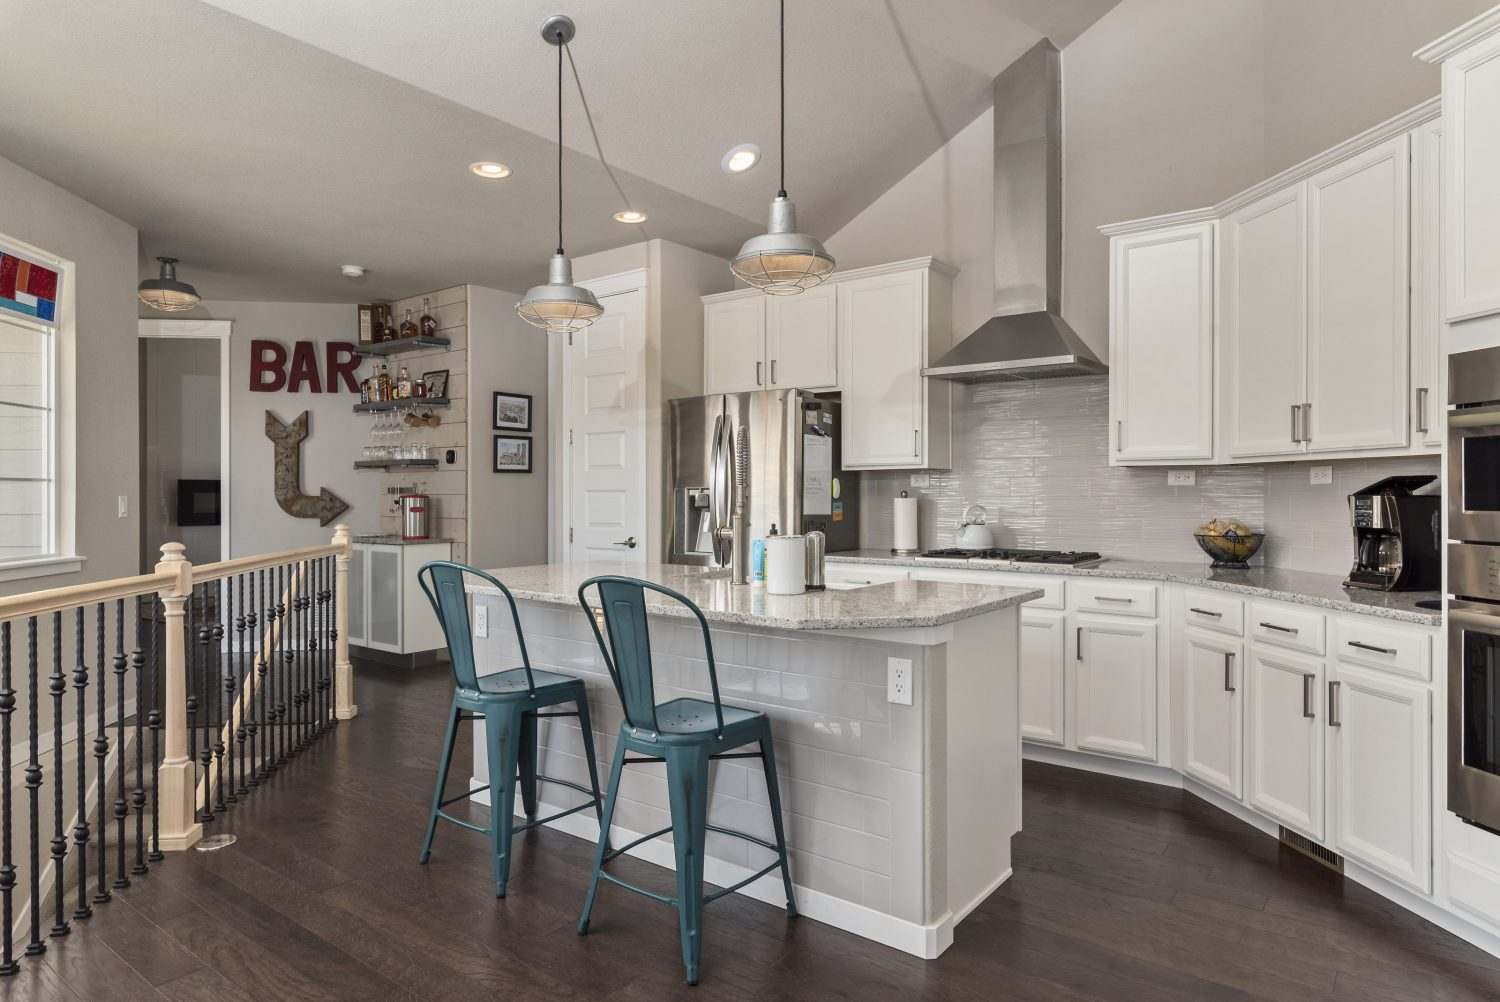 picture of a kitchen in a house for sale